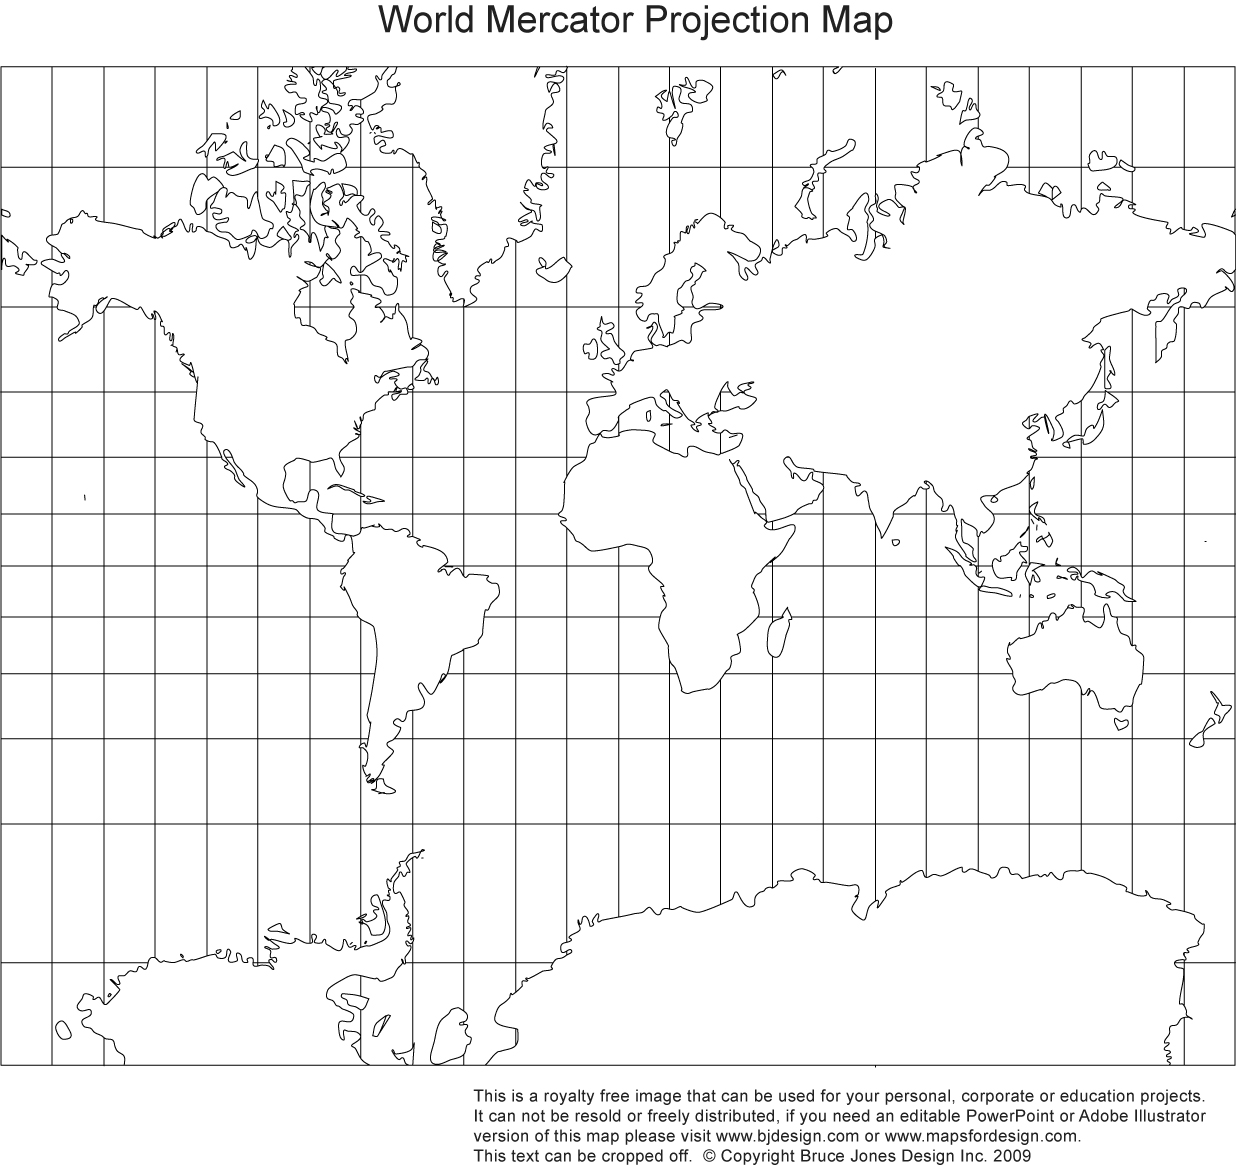 World Mercator Projection Continent Grid Lines Printable Blank Royalty Free Jpg